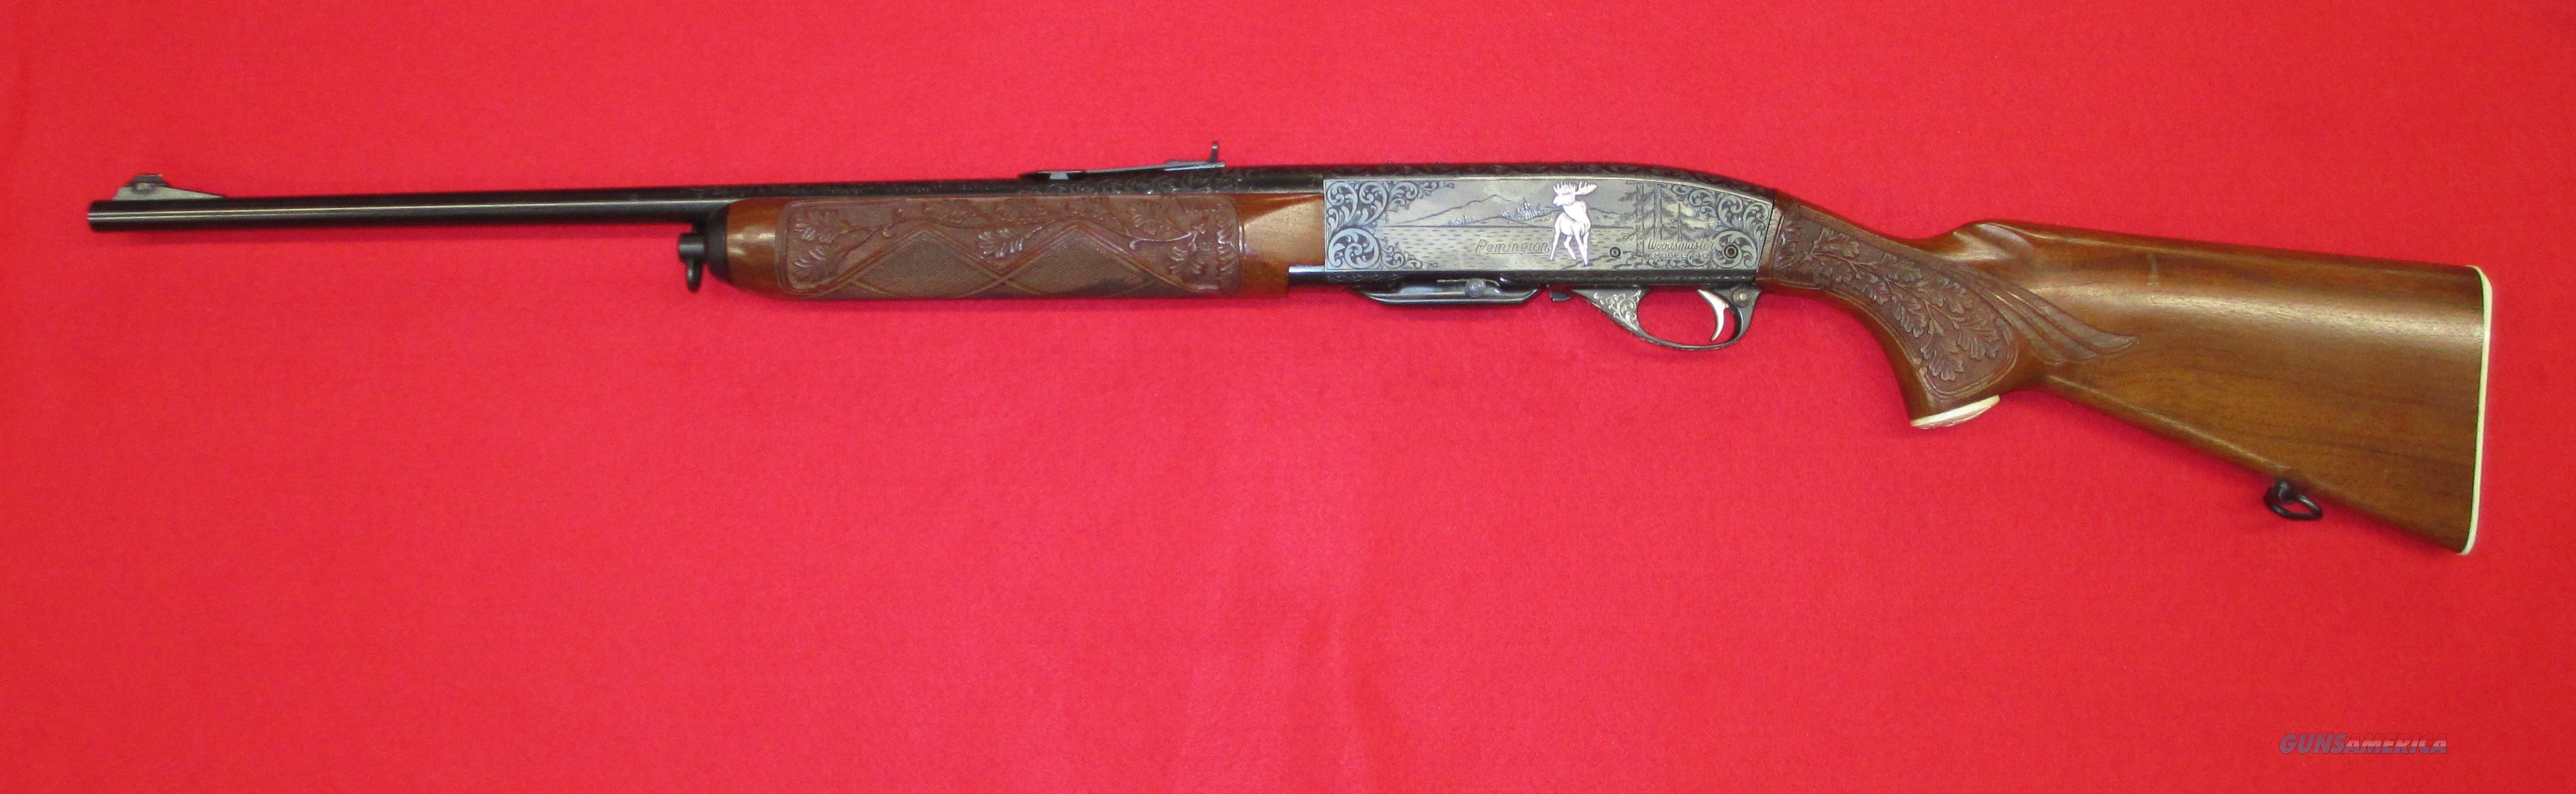 Remington 740 Woodsmaster Engraved 30 06 For Sale